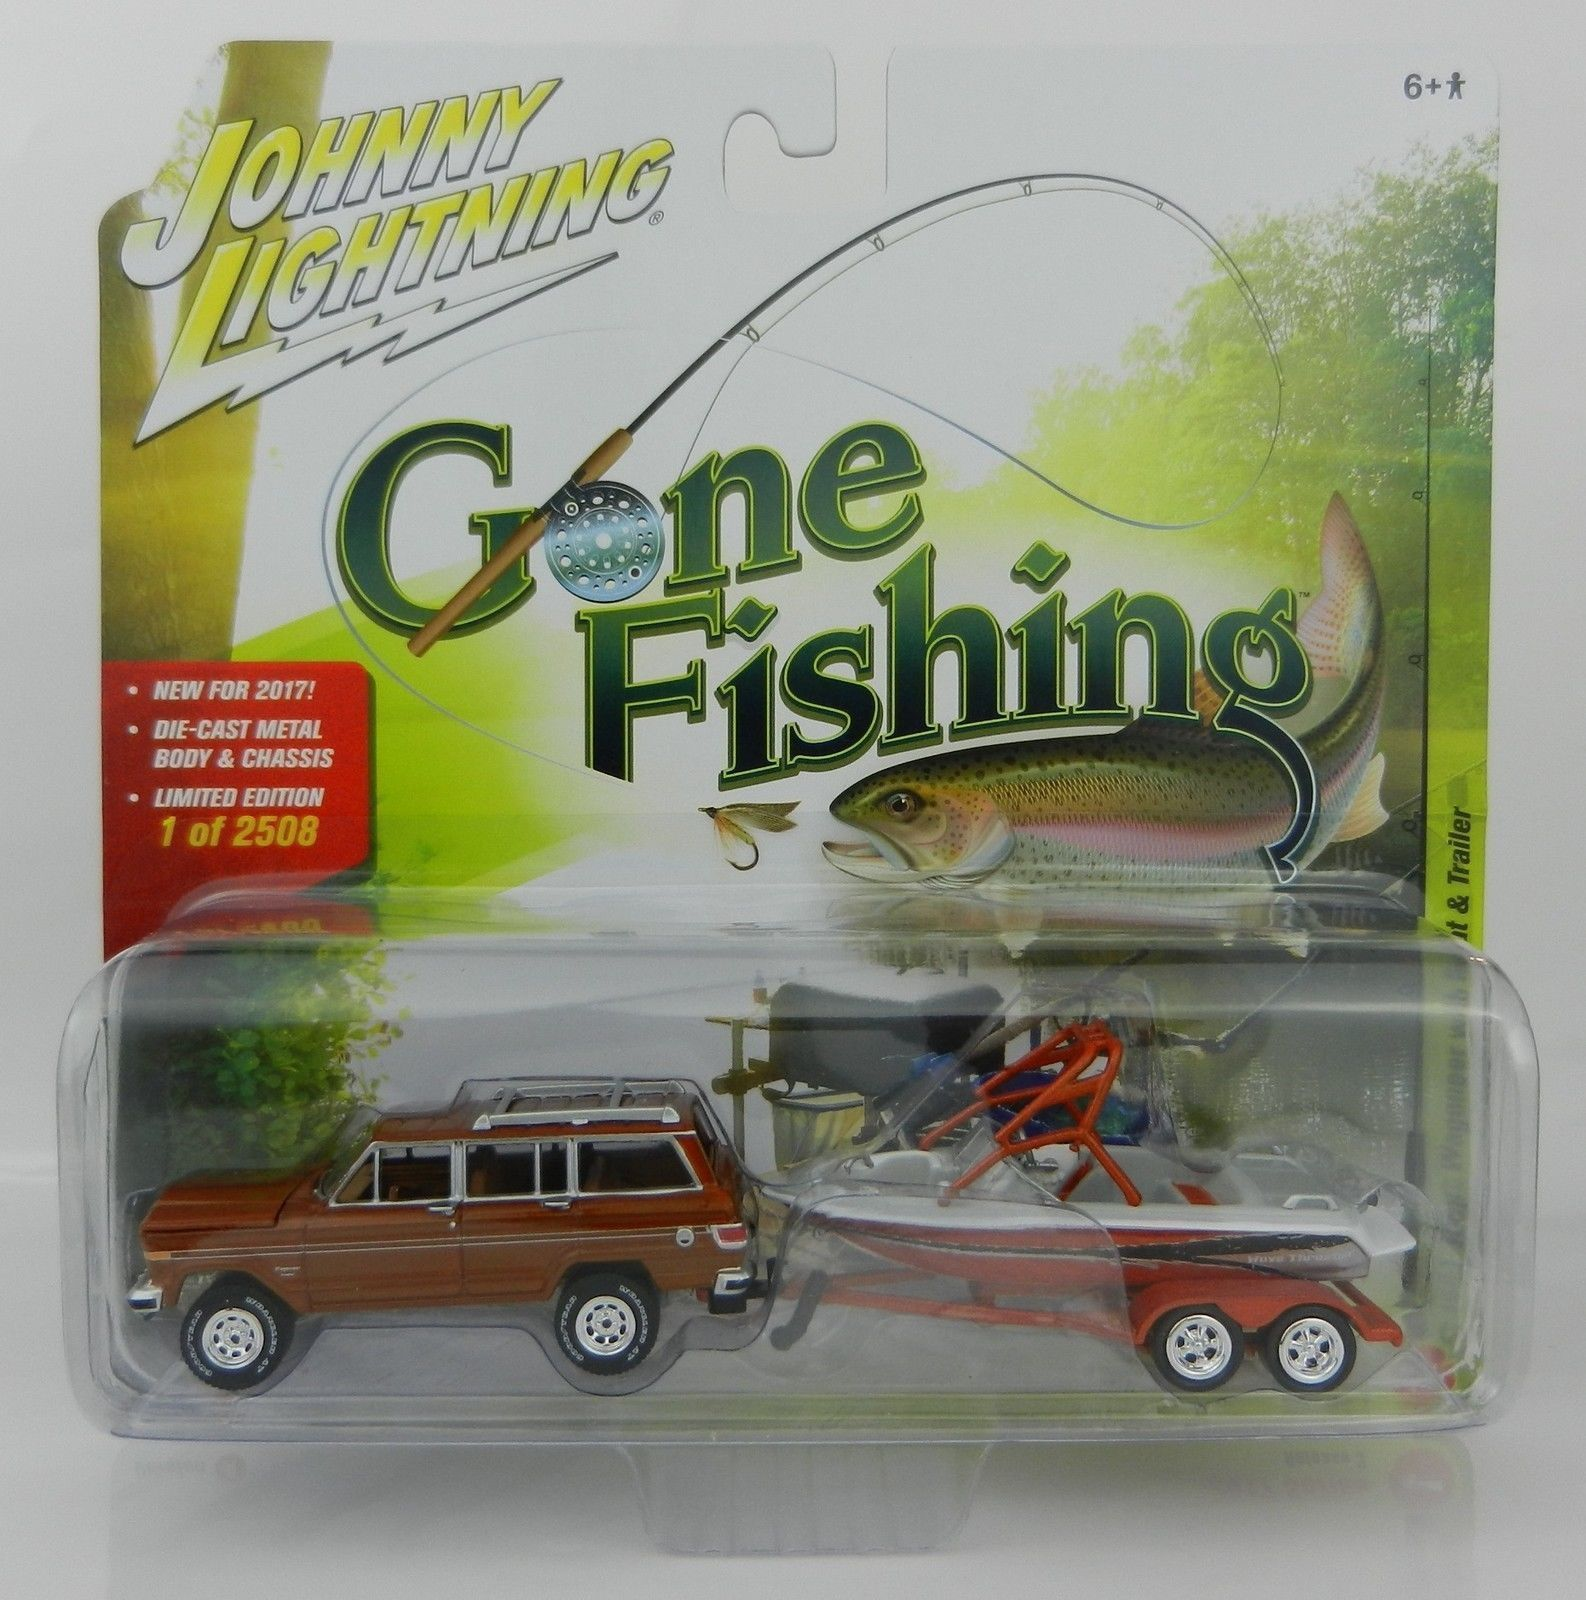 1:64 JOHNNY LIGHTNING GONE FISHING REL 3A - 1981 JEEP WAGONEER WITH BOAT & TRAIL for sale  USA